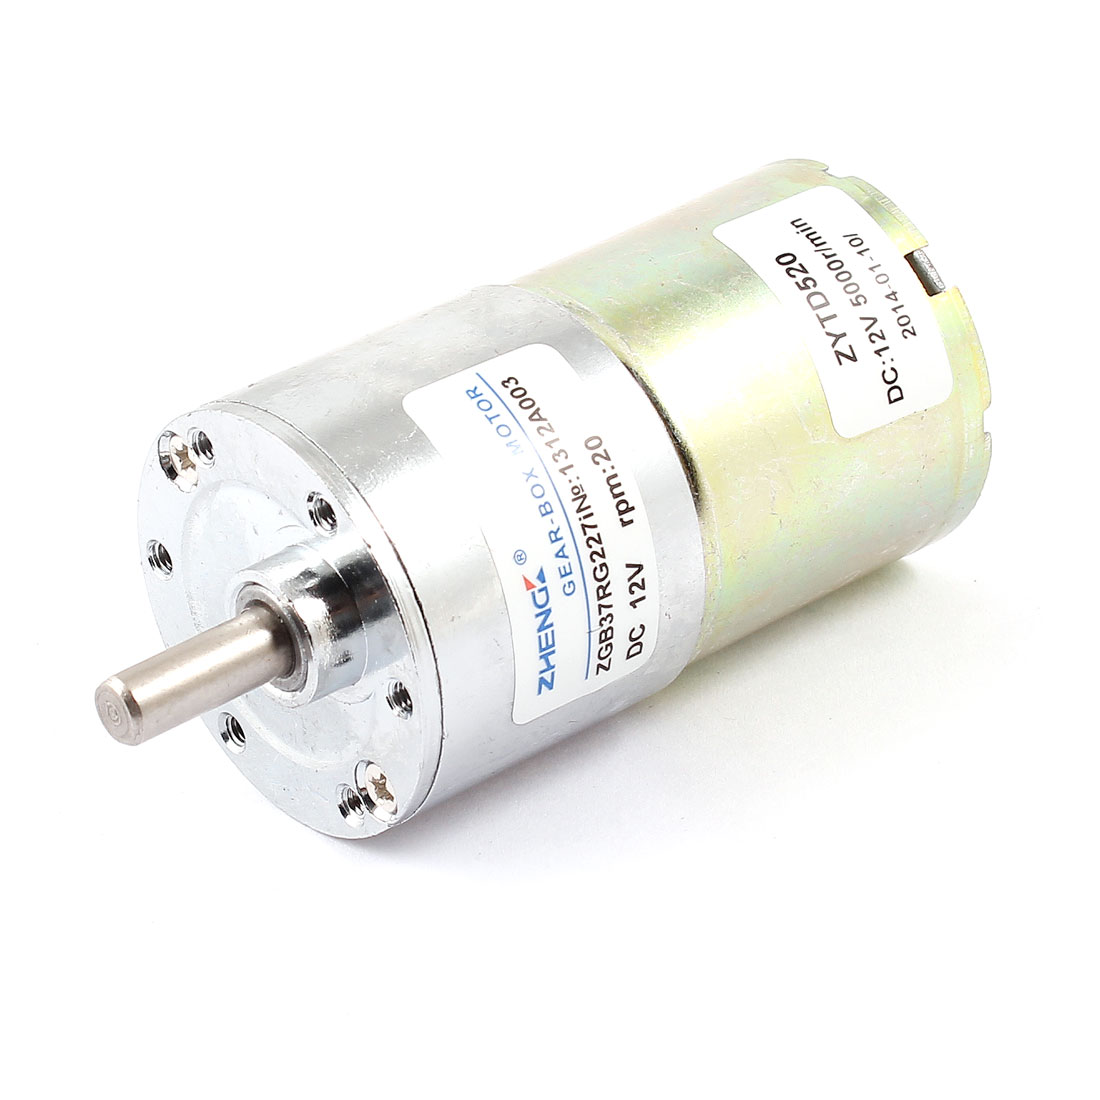 цена на Shaft Diameter 6mm x 15mm DC 12V 20 RPM Speed 6mm Dia Shaft Magnetic Gearbox Electric Geared Motor 37mm x 86mm